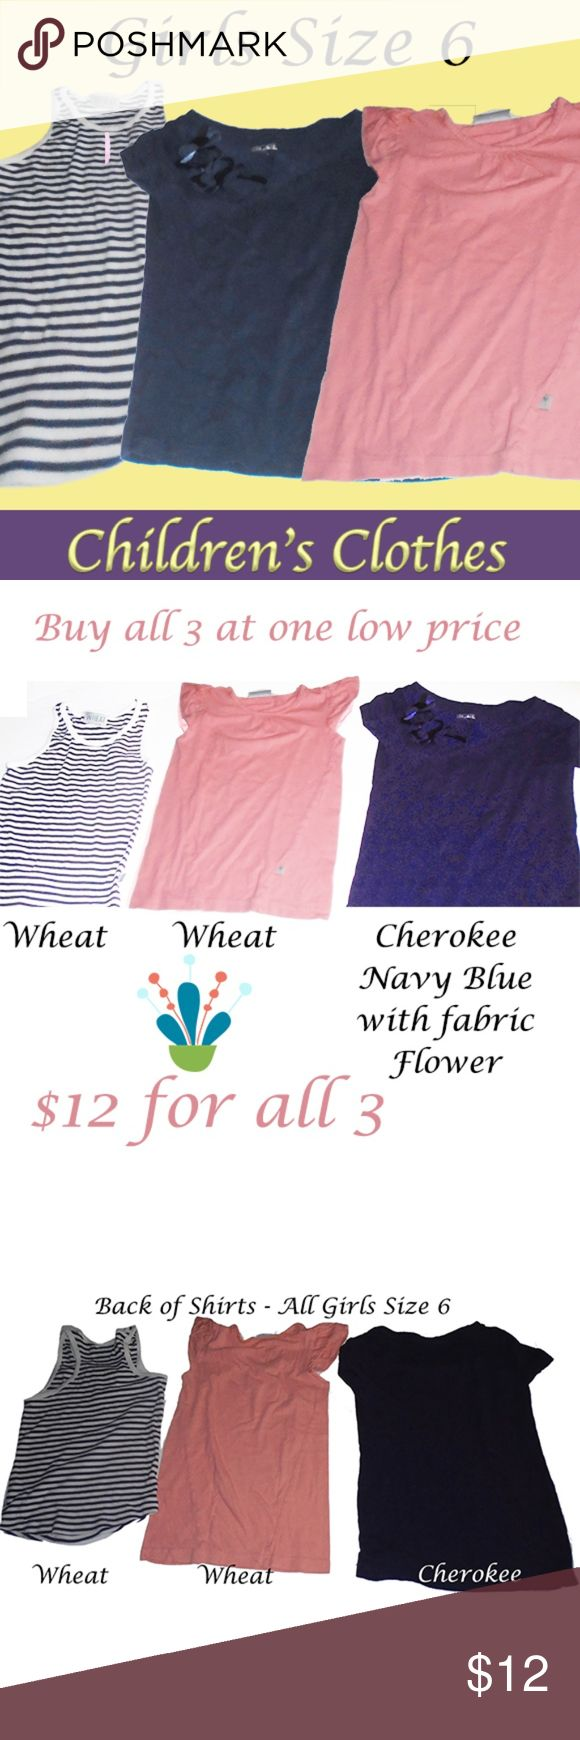 "3 girls size 6 tops - 2 EUC - Awesome Bargain You are buying all 3 tops! All at one low price of $12 for them. The Navy blue top has a fabric ""ribbon"" on one side (hard to see in the picture) - That one is made by Cherokee - size 6-6X. The other two are from the company Wheat - one is a peachy/pink and the other is black & white striped - both of those are size 6Y. All 3 are in excellent condition Assorted Shirts & Tops Tees - Short Sleeve"